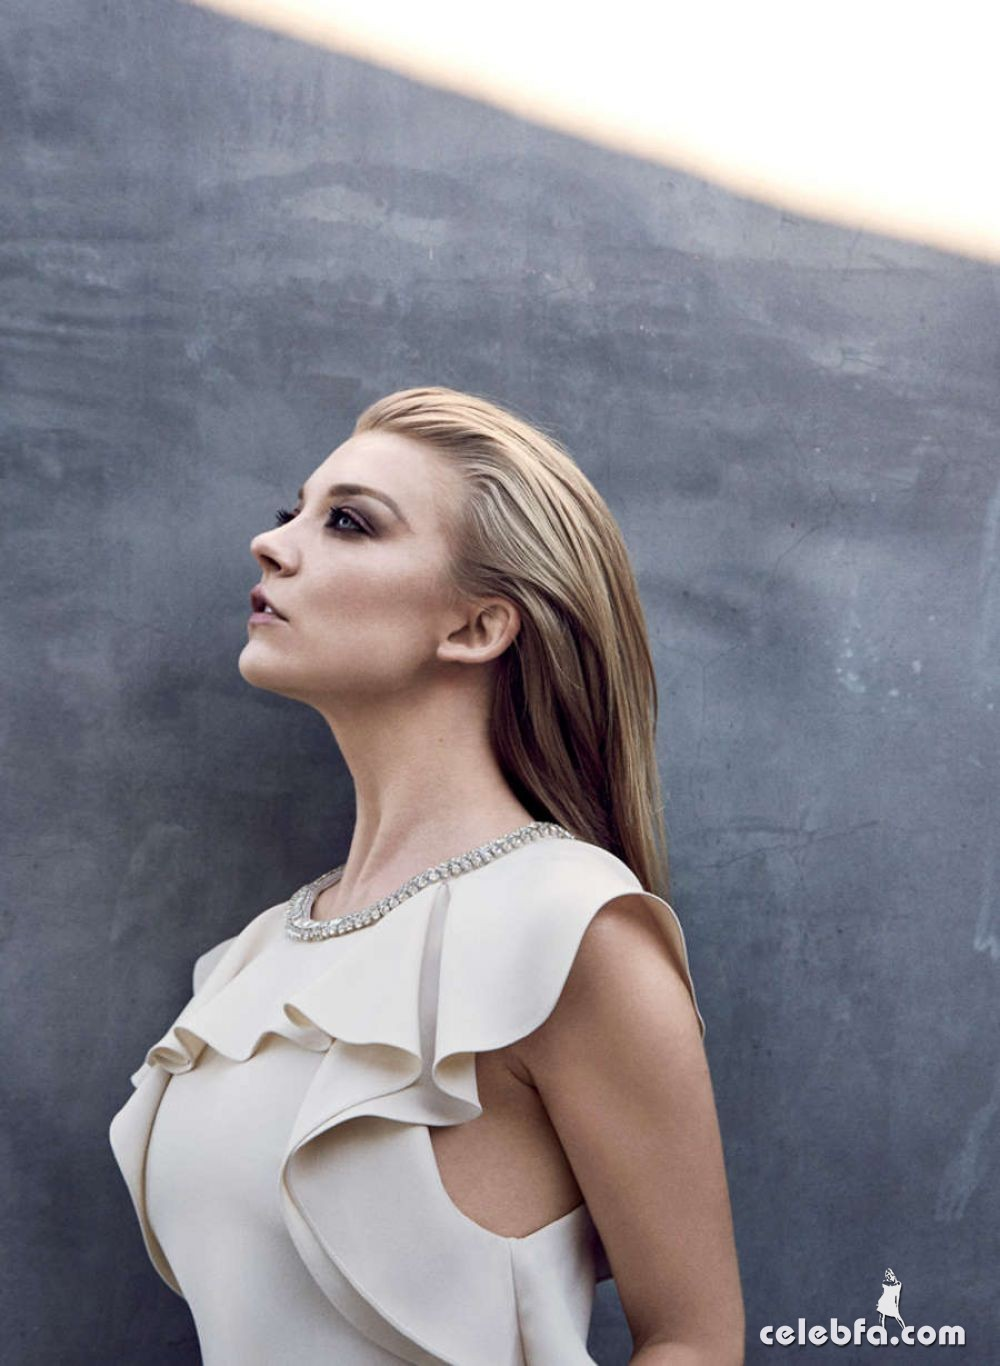 natalie-dormer-in-fashion-magazine-february-2016 (3)